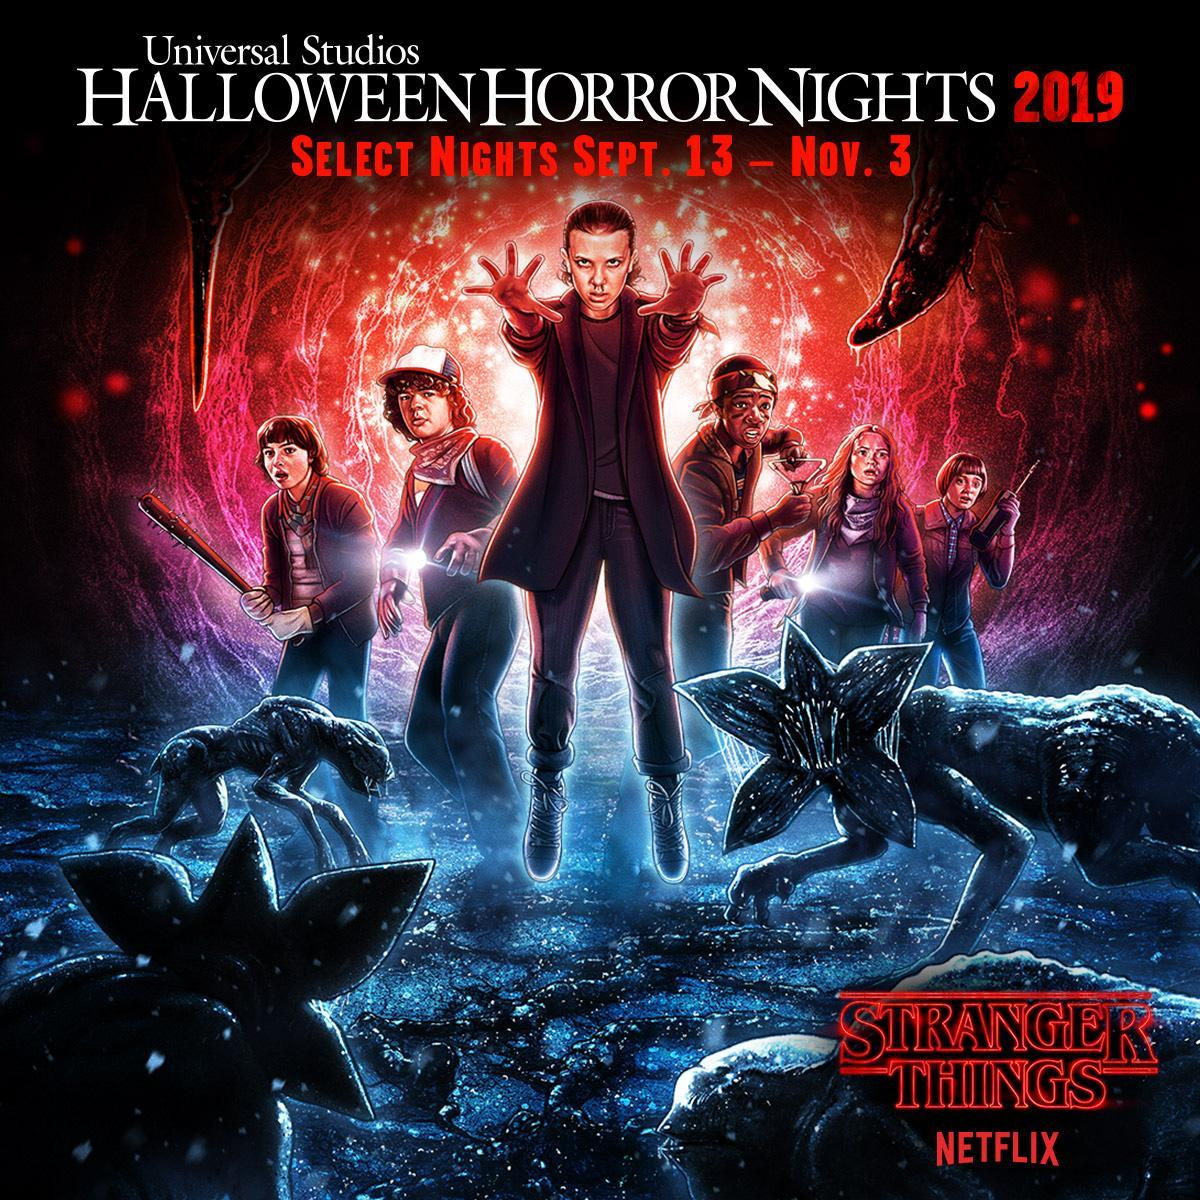 Looking to add some more horror to your October? Use your #AAADiscounts to save up to $40 on #HHN2019 tickets happening now at Universal Studios Hollywood.  #AAADiscountDownload